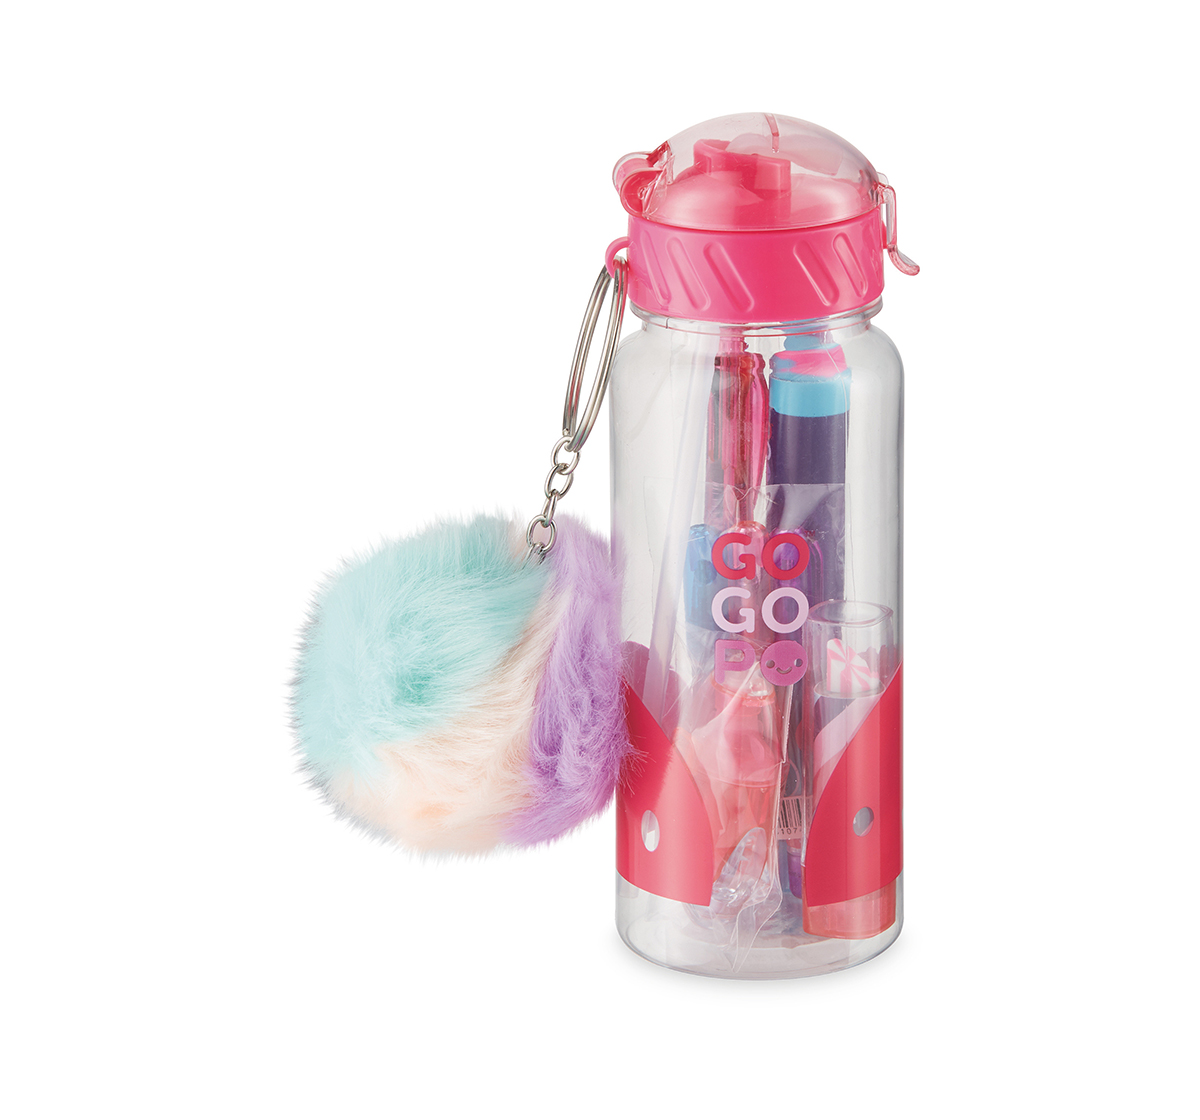 Gogopo   Gogopo Pink Sports Bottle Bundle School Stationery for Kids age 3Y+ (Pink)